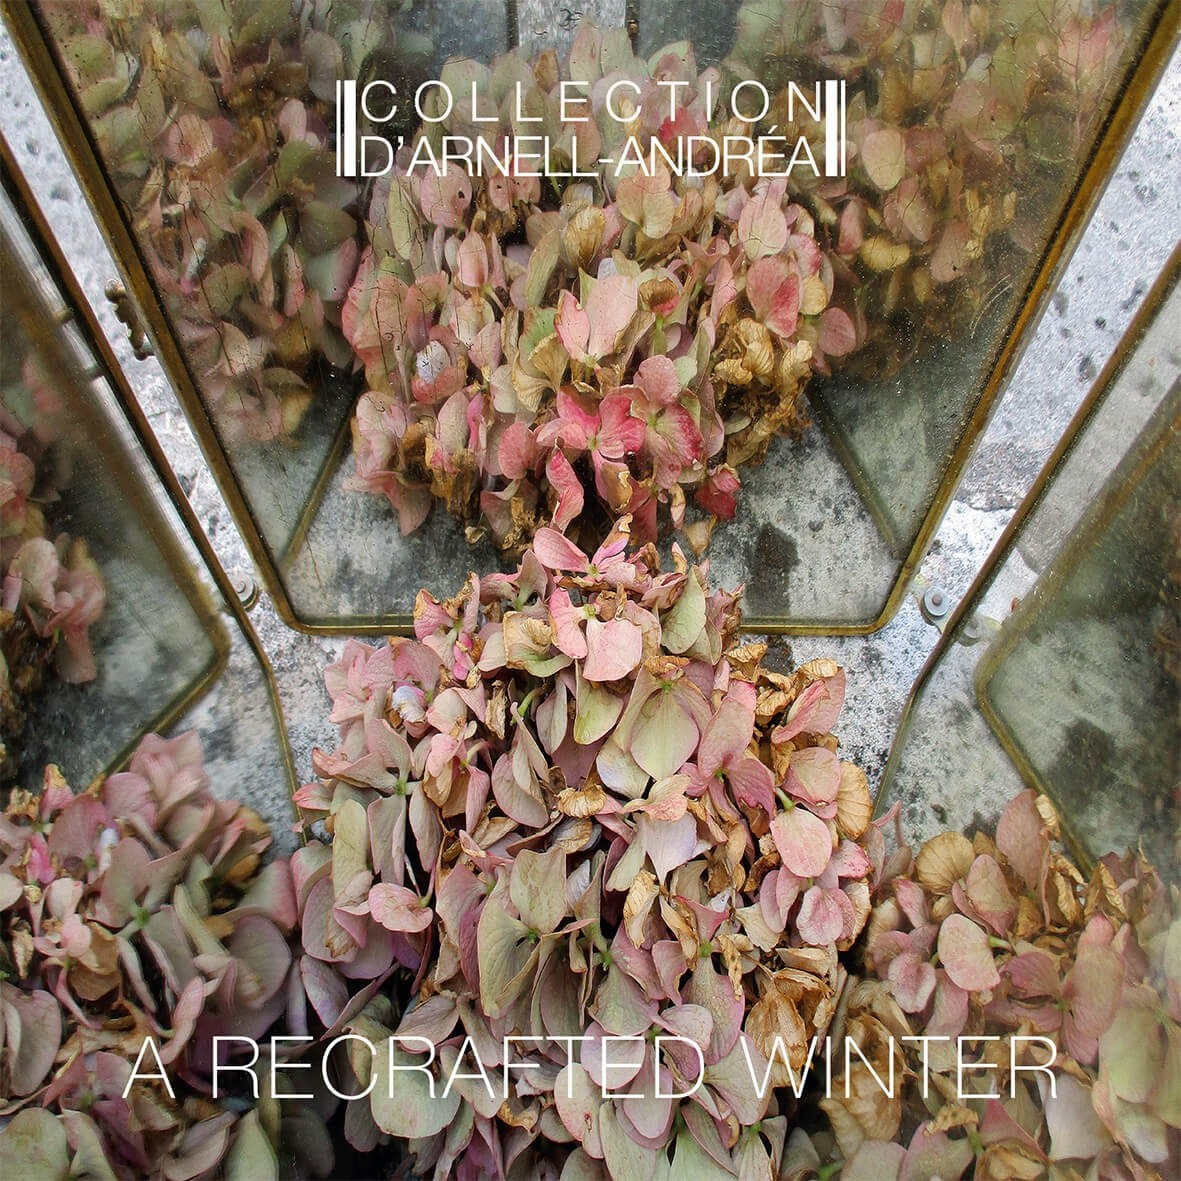 Collection D'Arnell-Andrea - A Recrafted Winter - CD